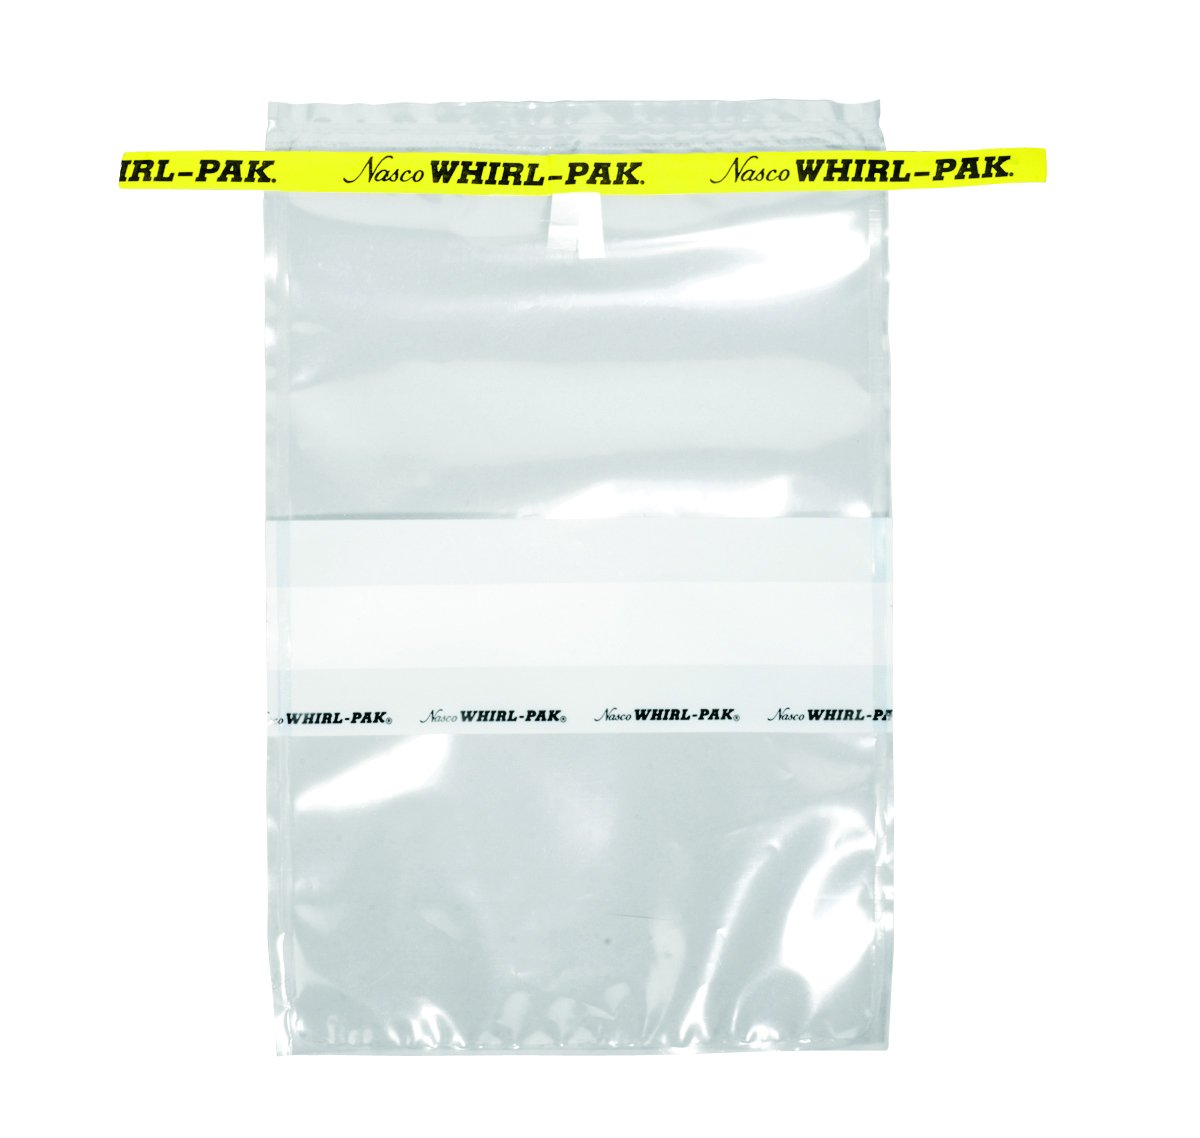 Nasco Whirl-Pak B01297WA Write-On Bag, 23cm L x 15cm W, 0.076mm Thickness, 710ml Capacity (Box of 500)